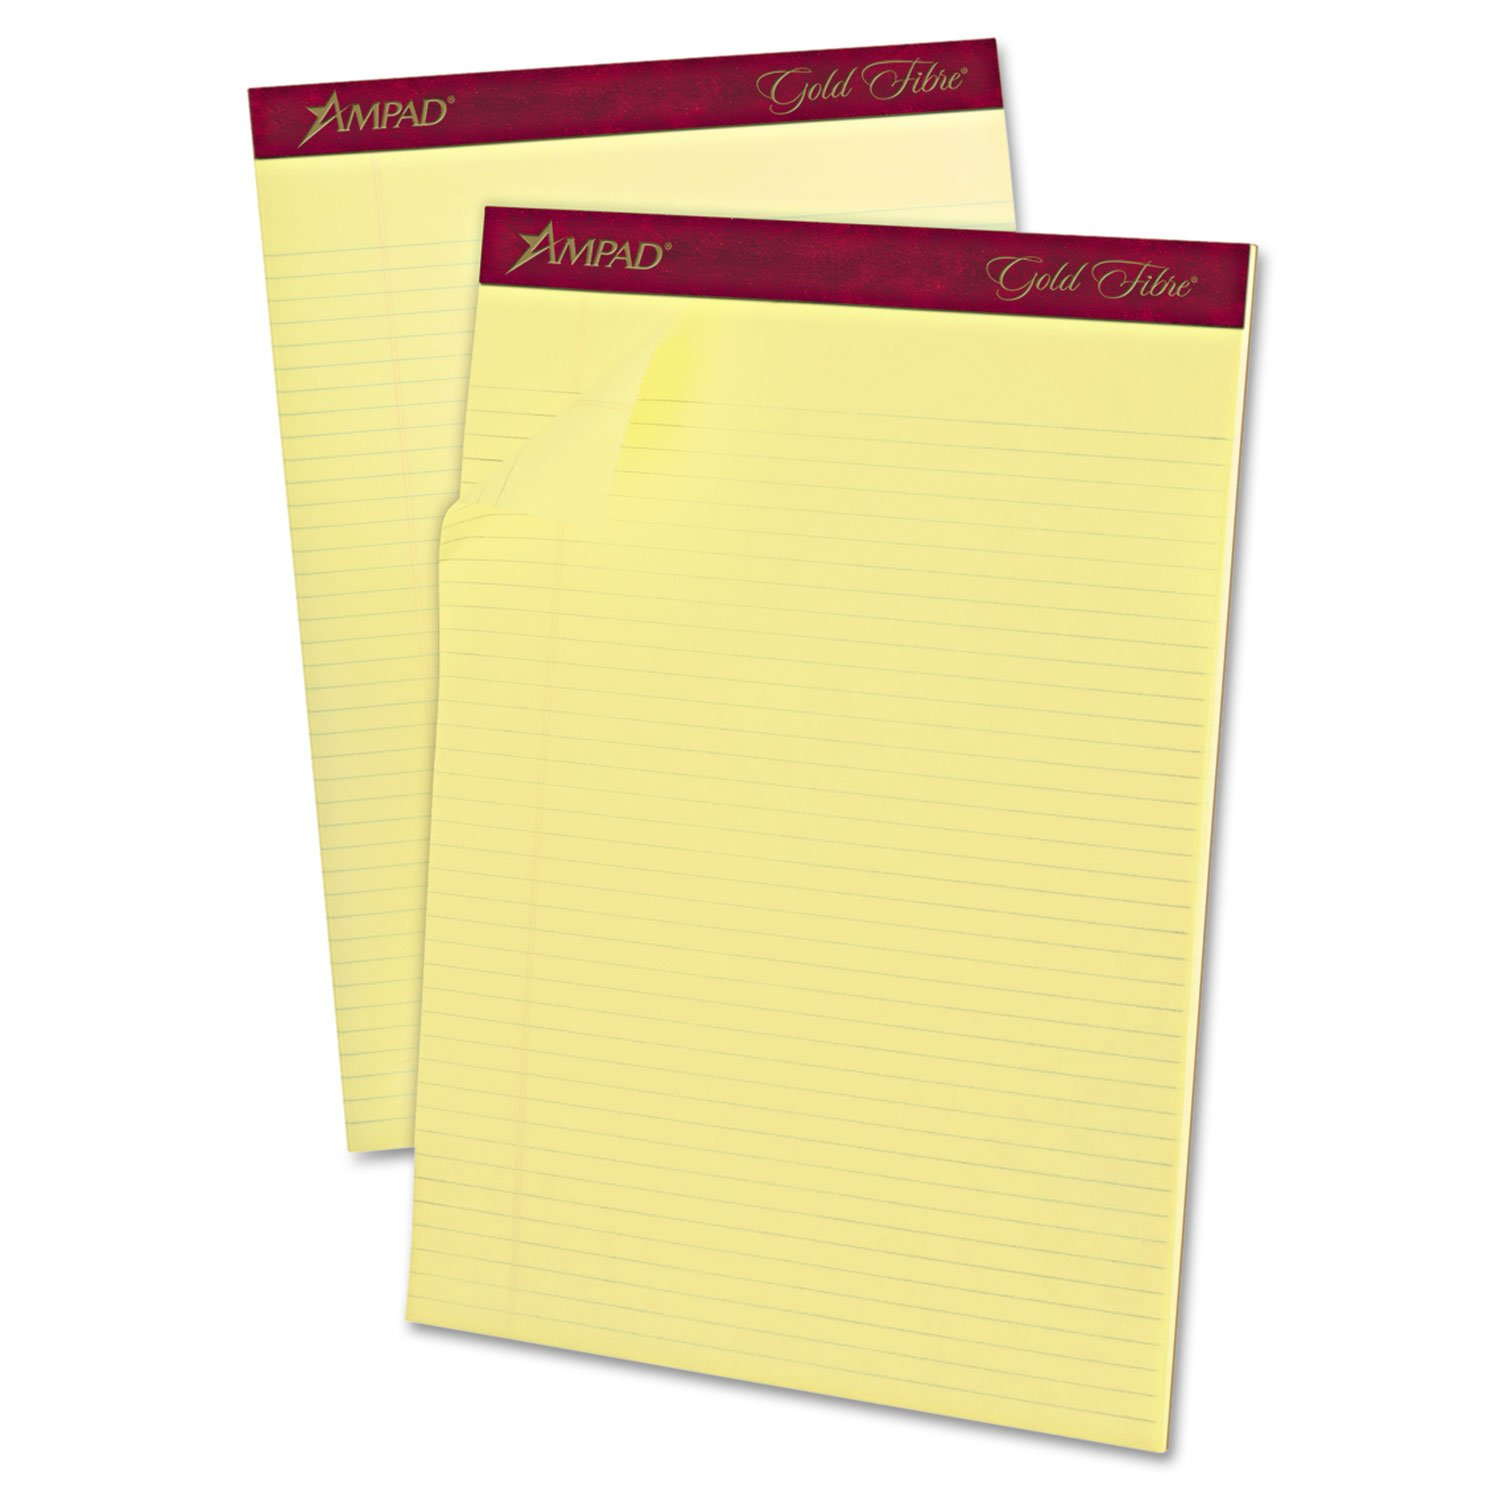 Ampad 20022 Perforated Pads,Narrow,50 Shts,8-1/2-Inch x11-3/4-Inch,Canary